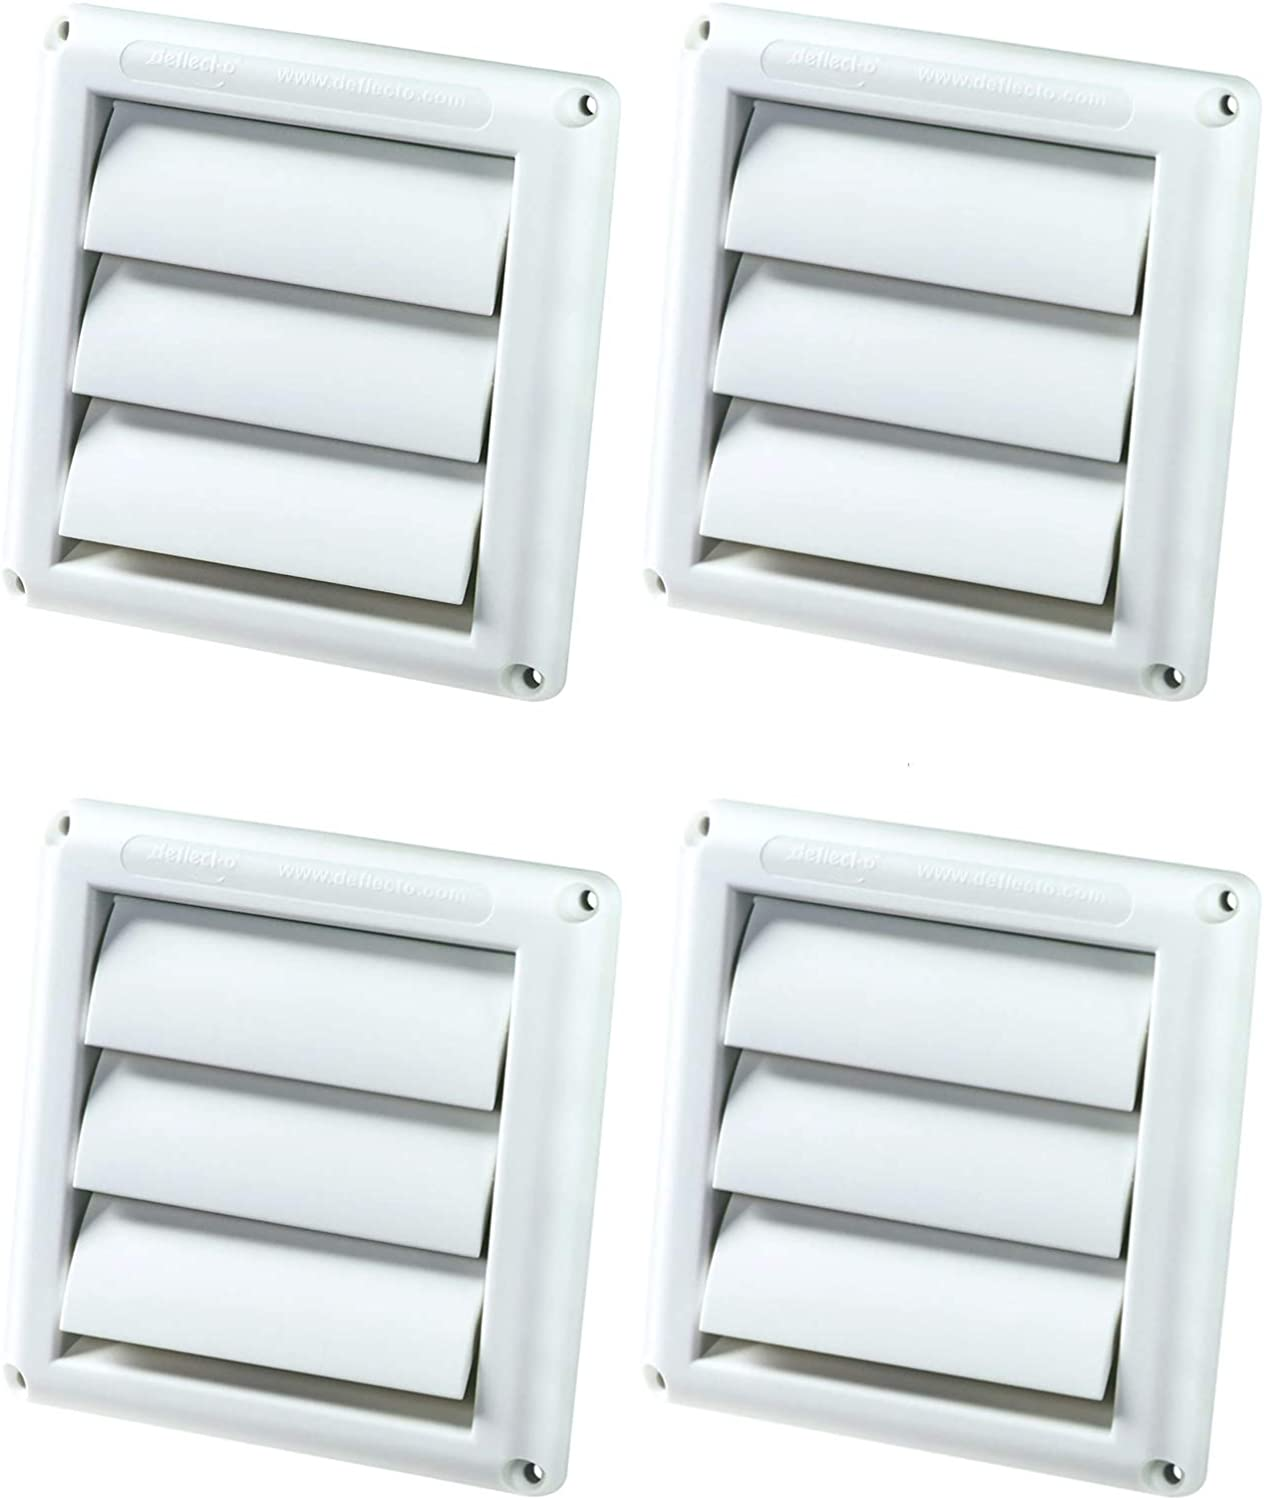 (4 Pack) - Deflecto Supurr-Vent Louvered Outdoor Dryer Vent Cover, 4 Inches Hood, White (Hs4W/18)